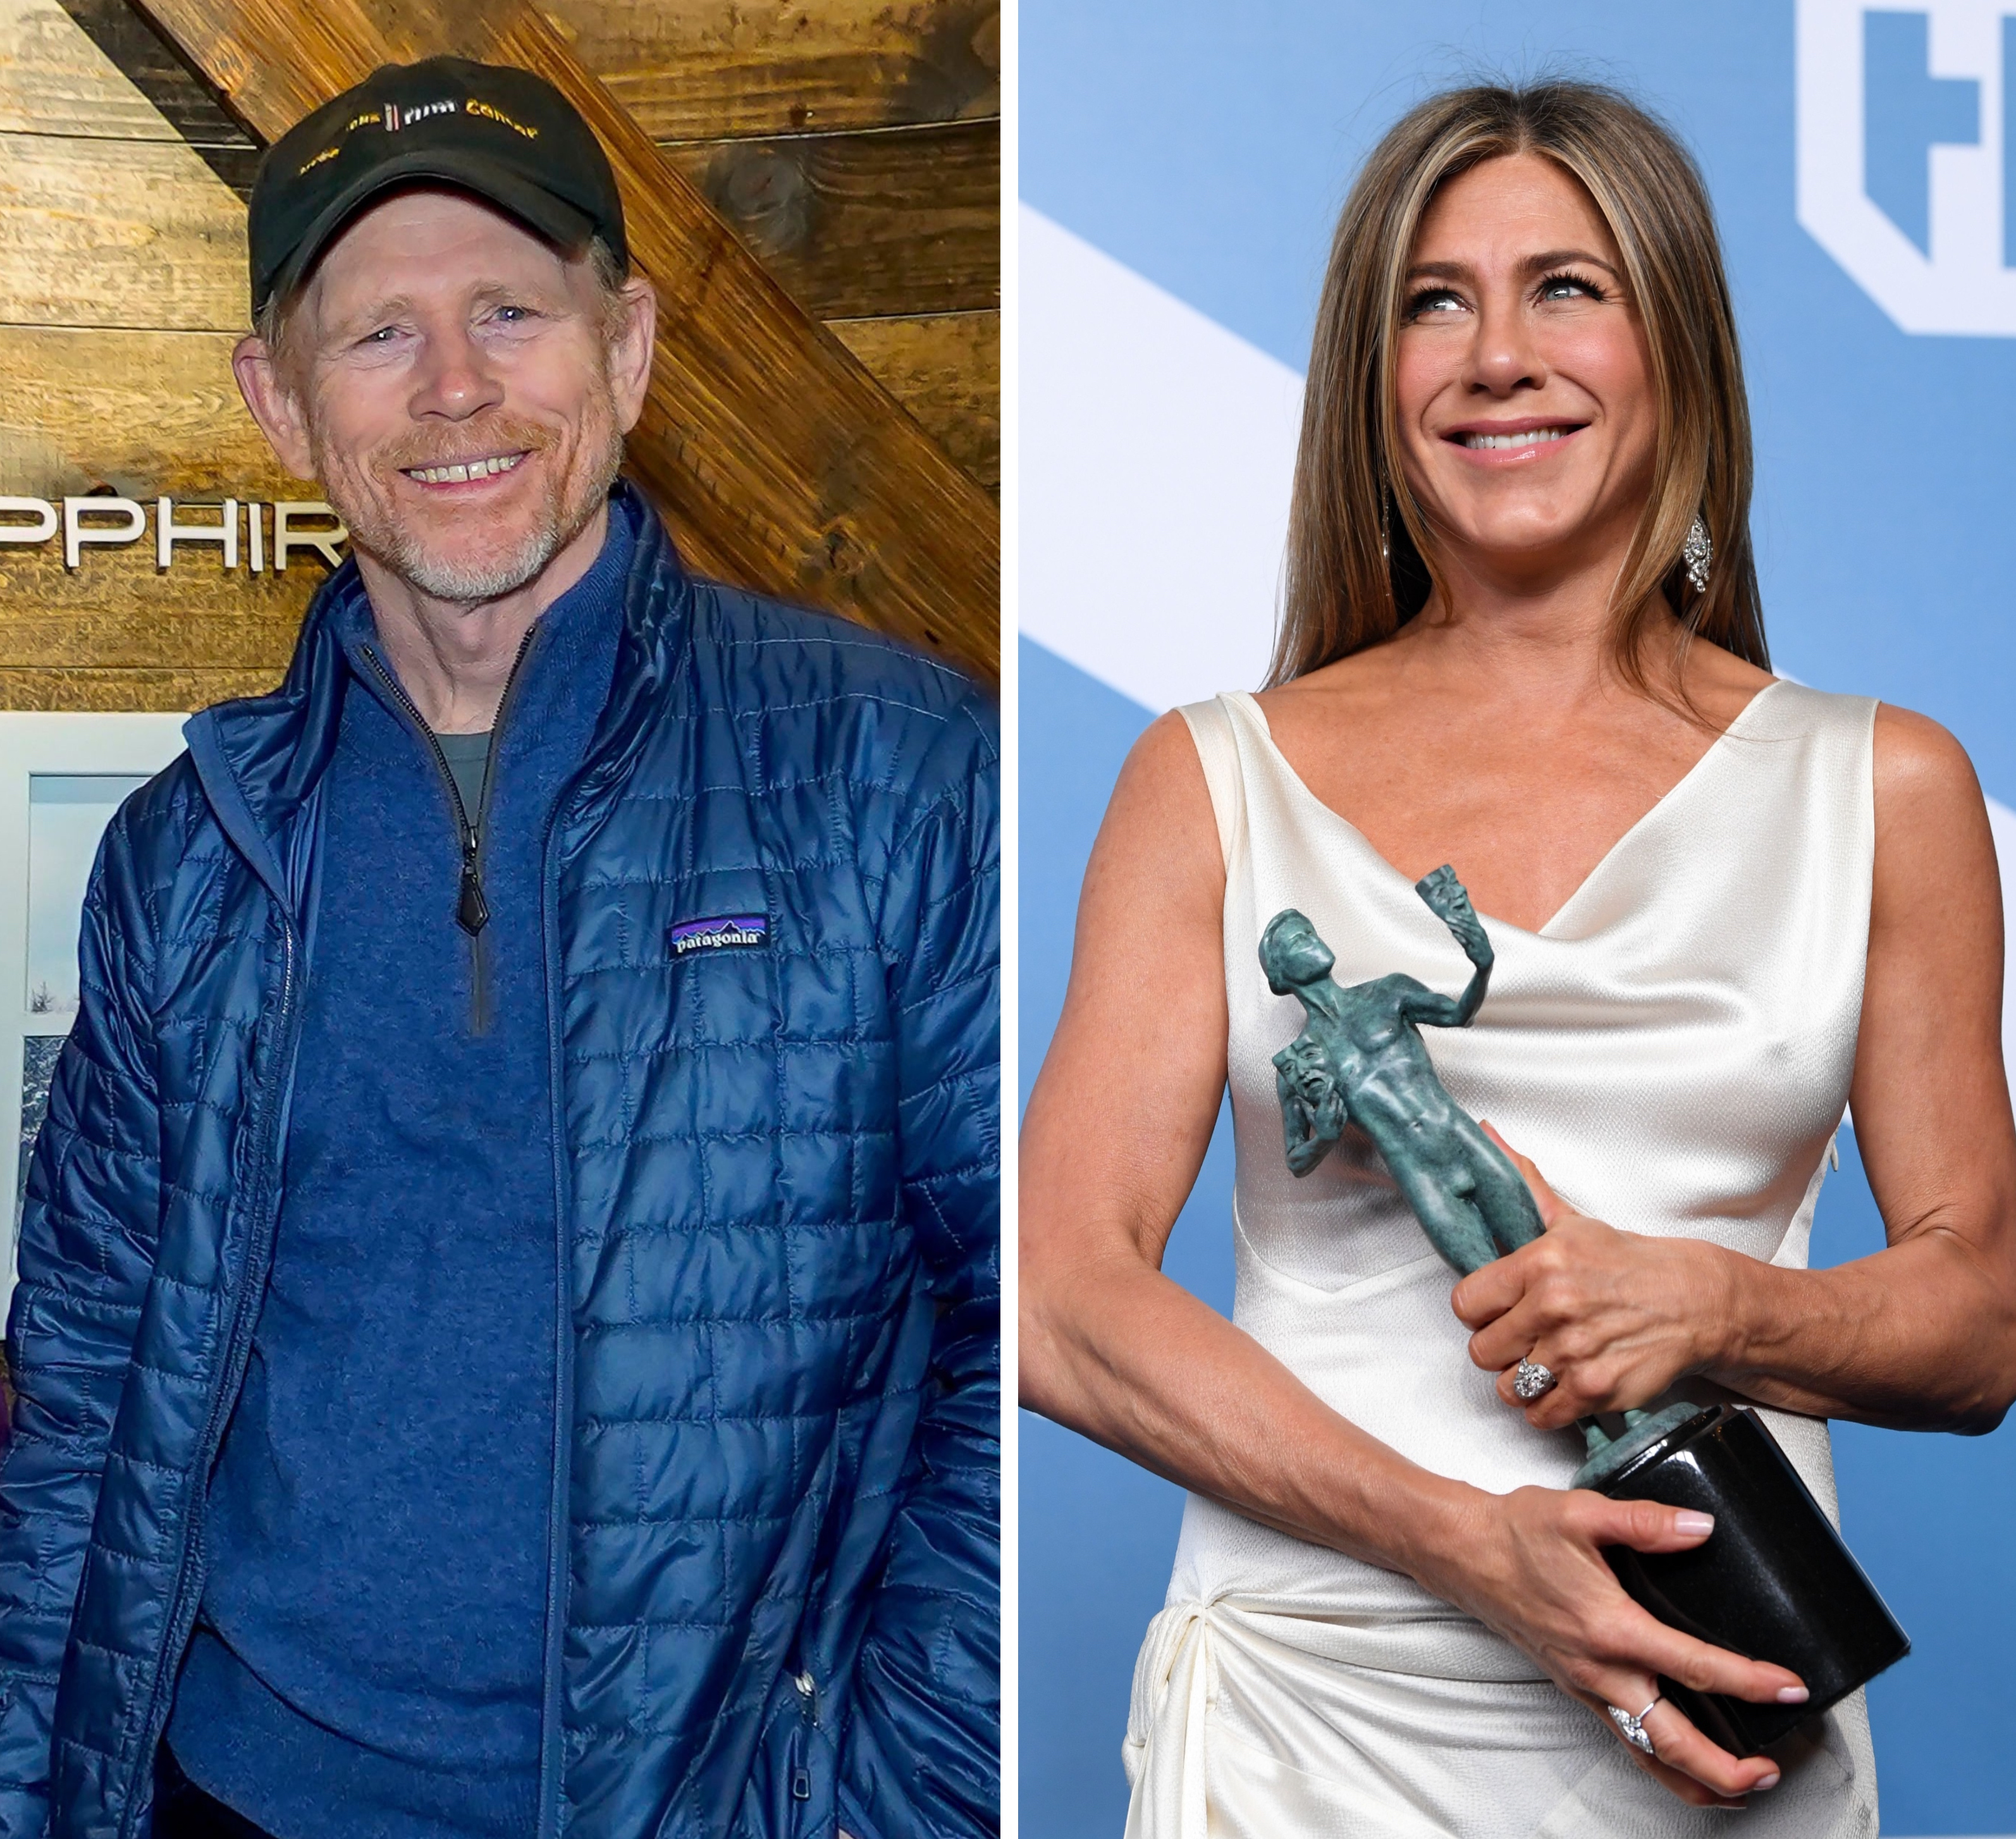 Ron Howard Gushes About Jennifer Aniston After She Praises 'Happy Days': 'She's Great'